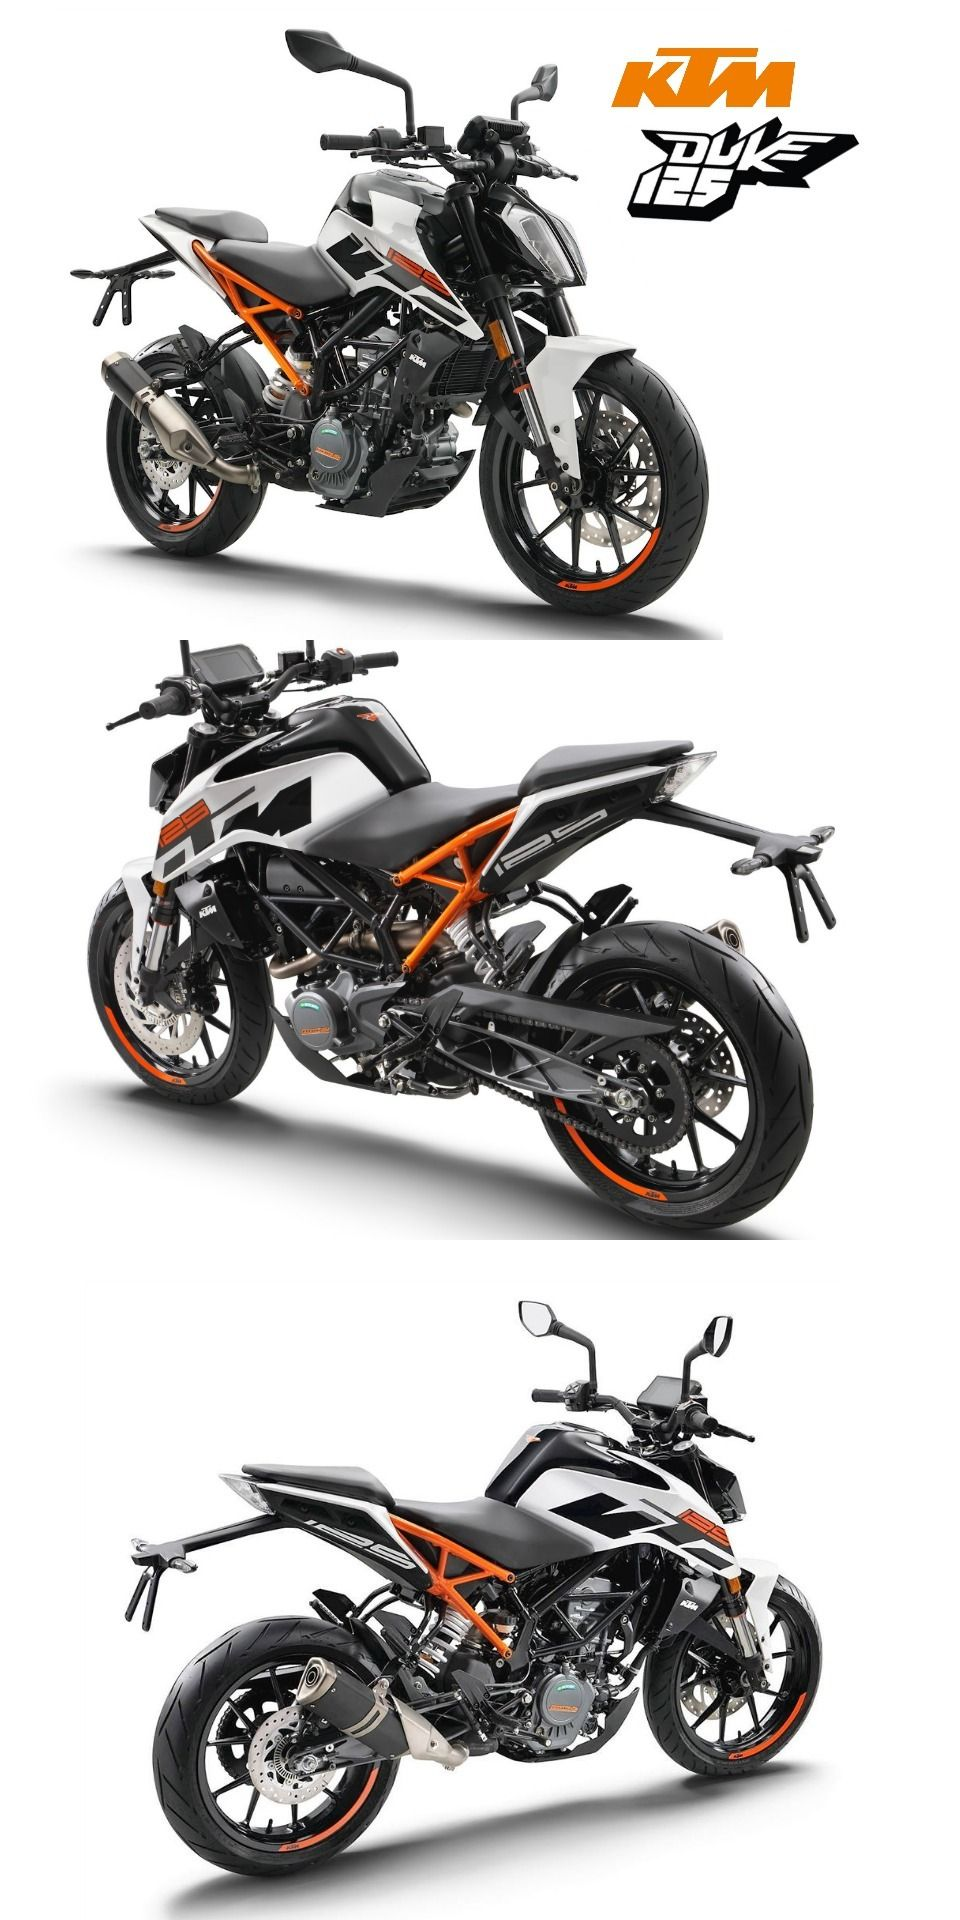 2017 All New Ktm Duke 125 The Best 125cc Bike In The World Ktm